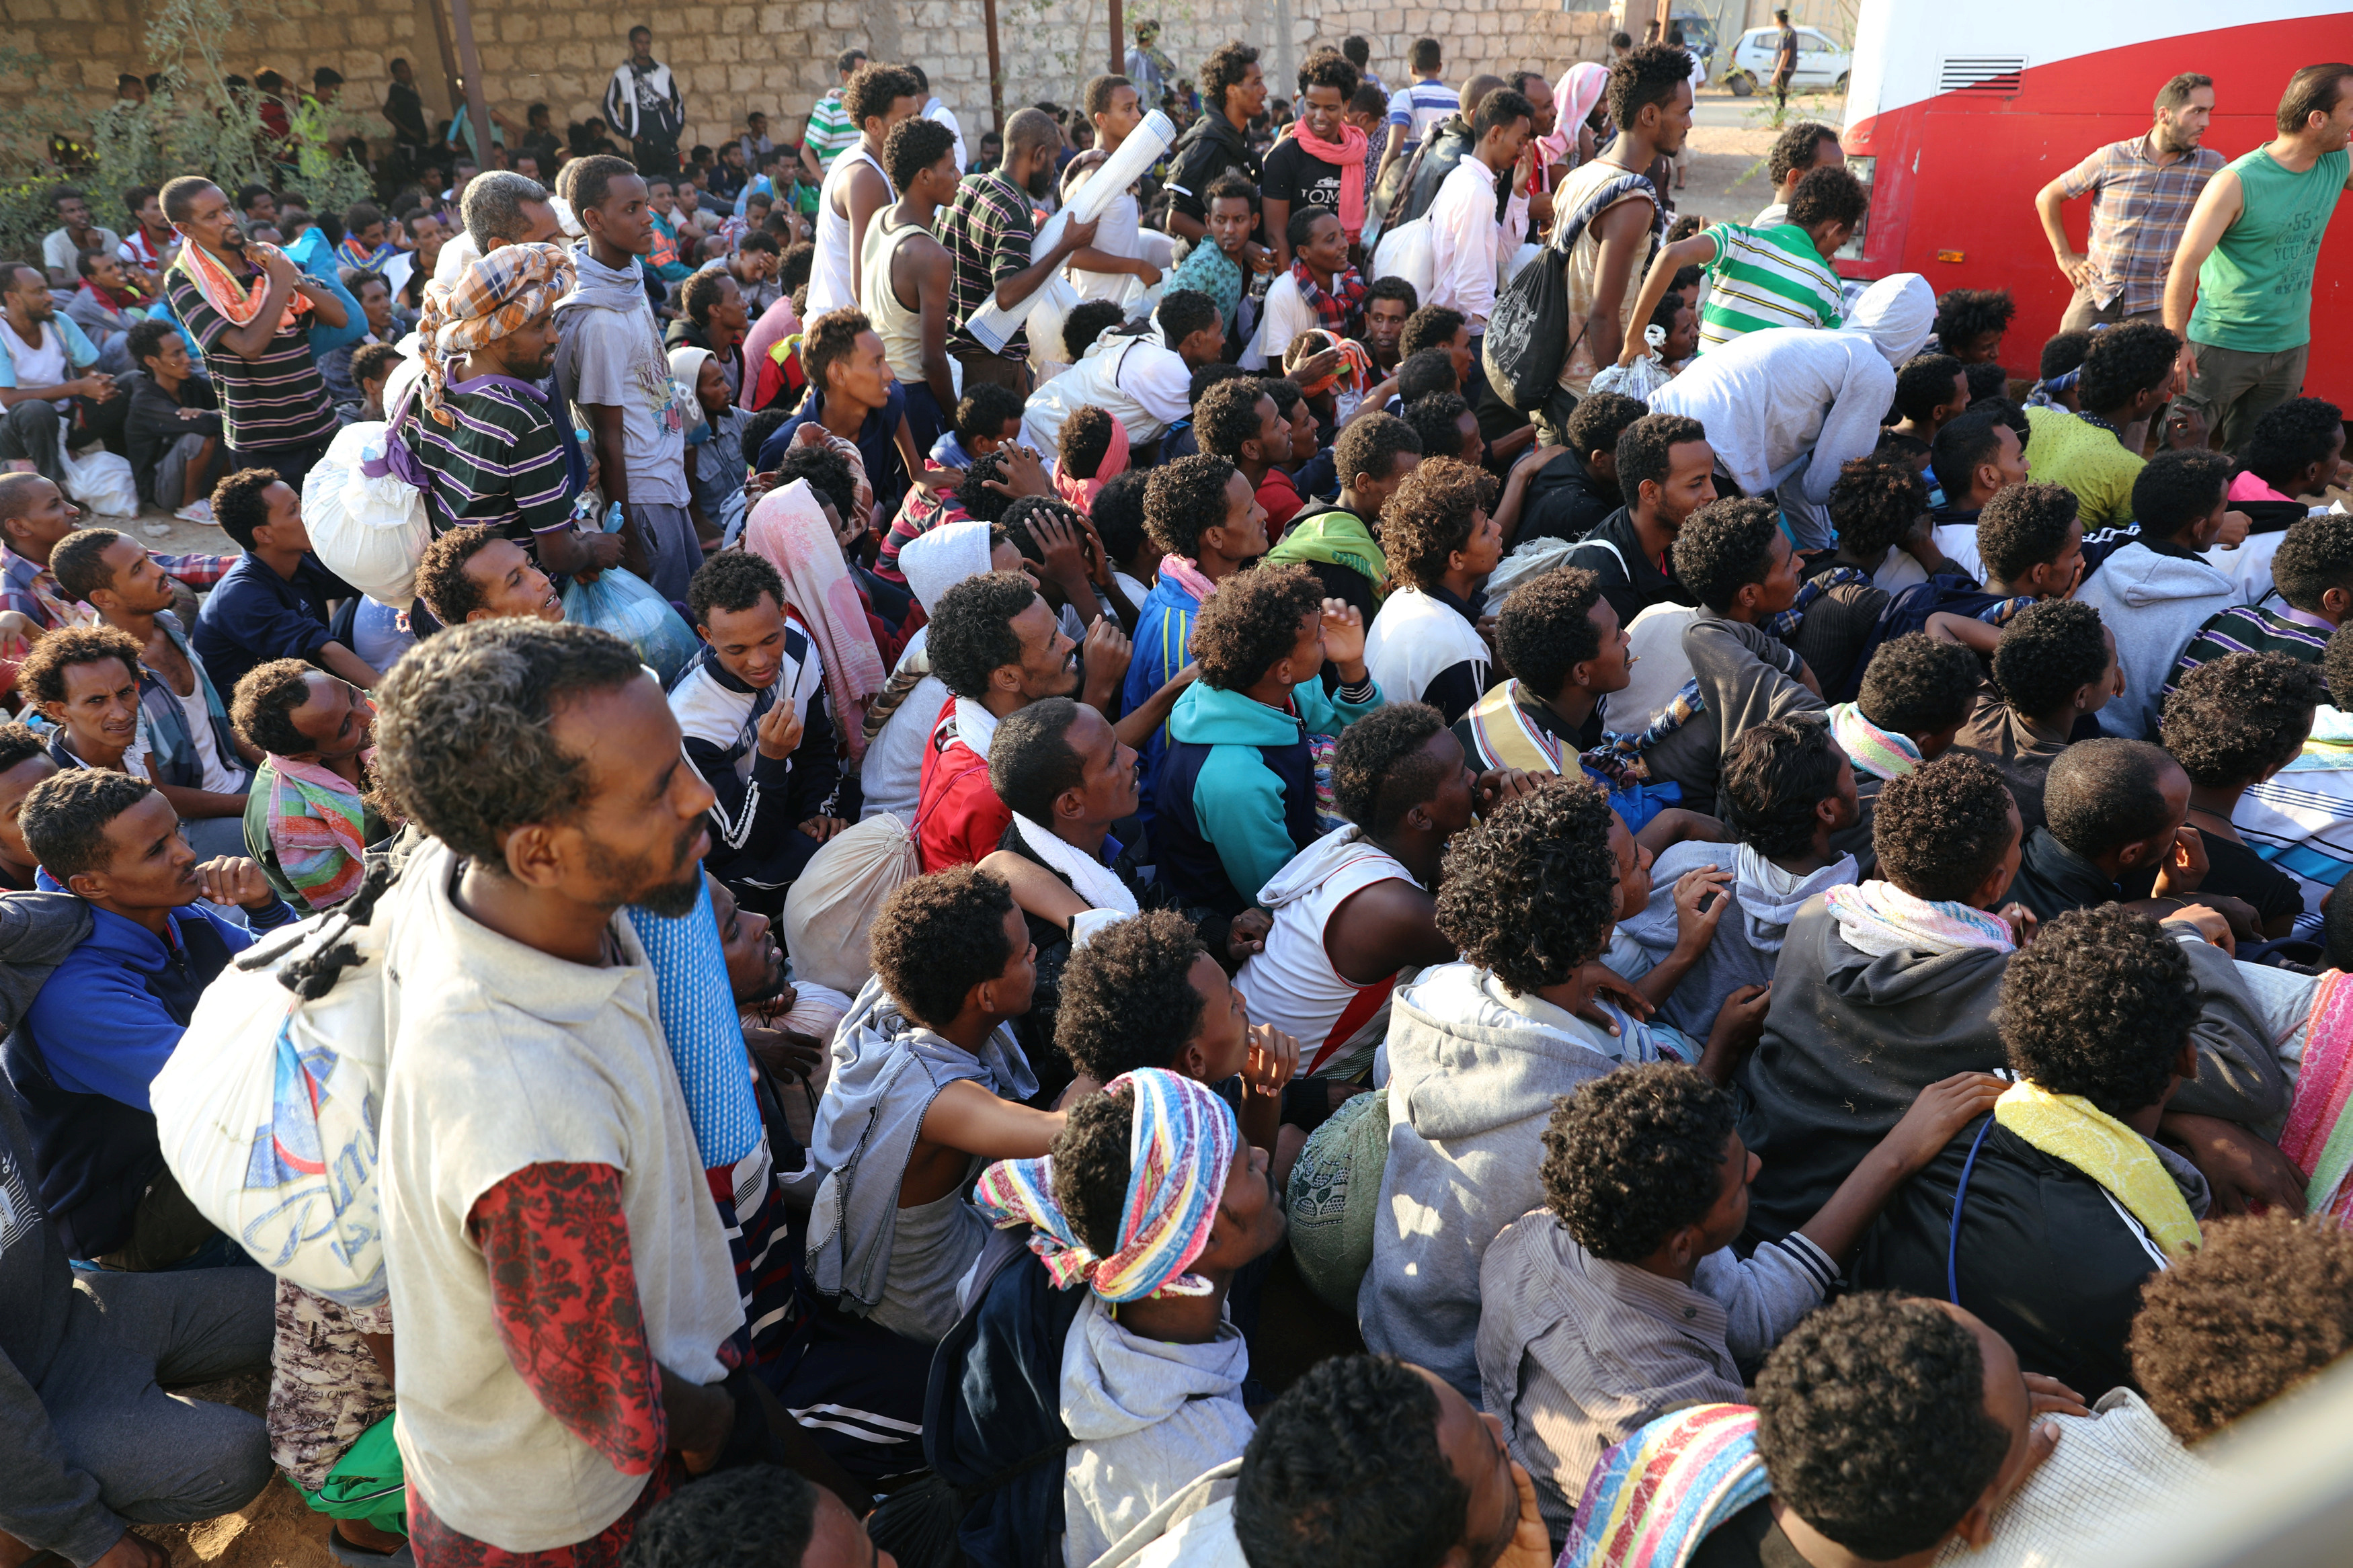 A Group Of Migrants Was Rescued At Sea. Now, They Refuse To Leave The Ship — Here's Why